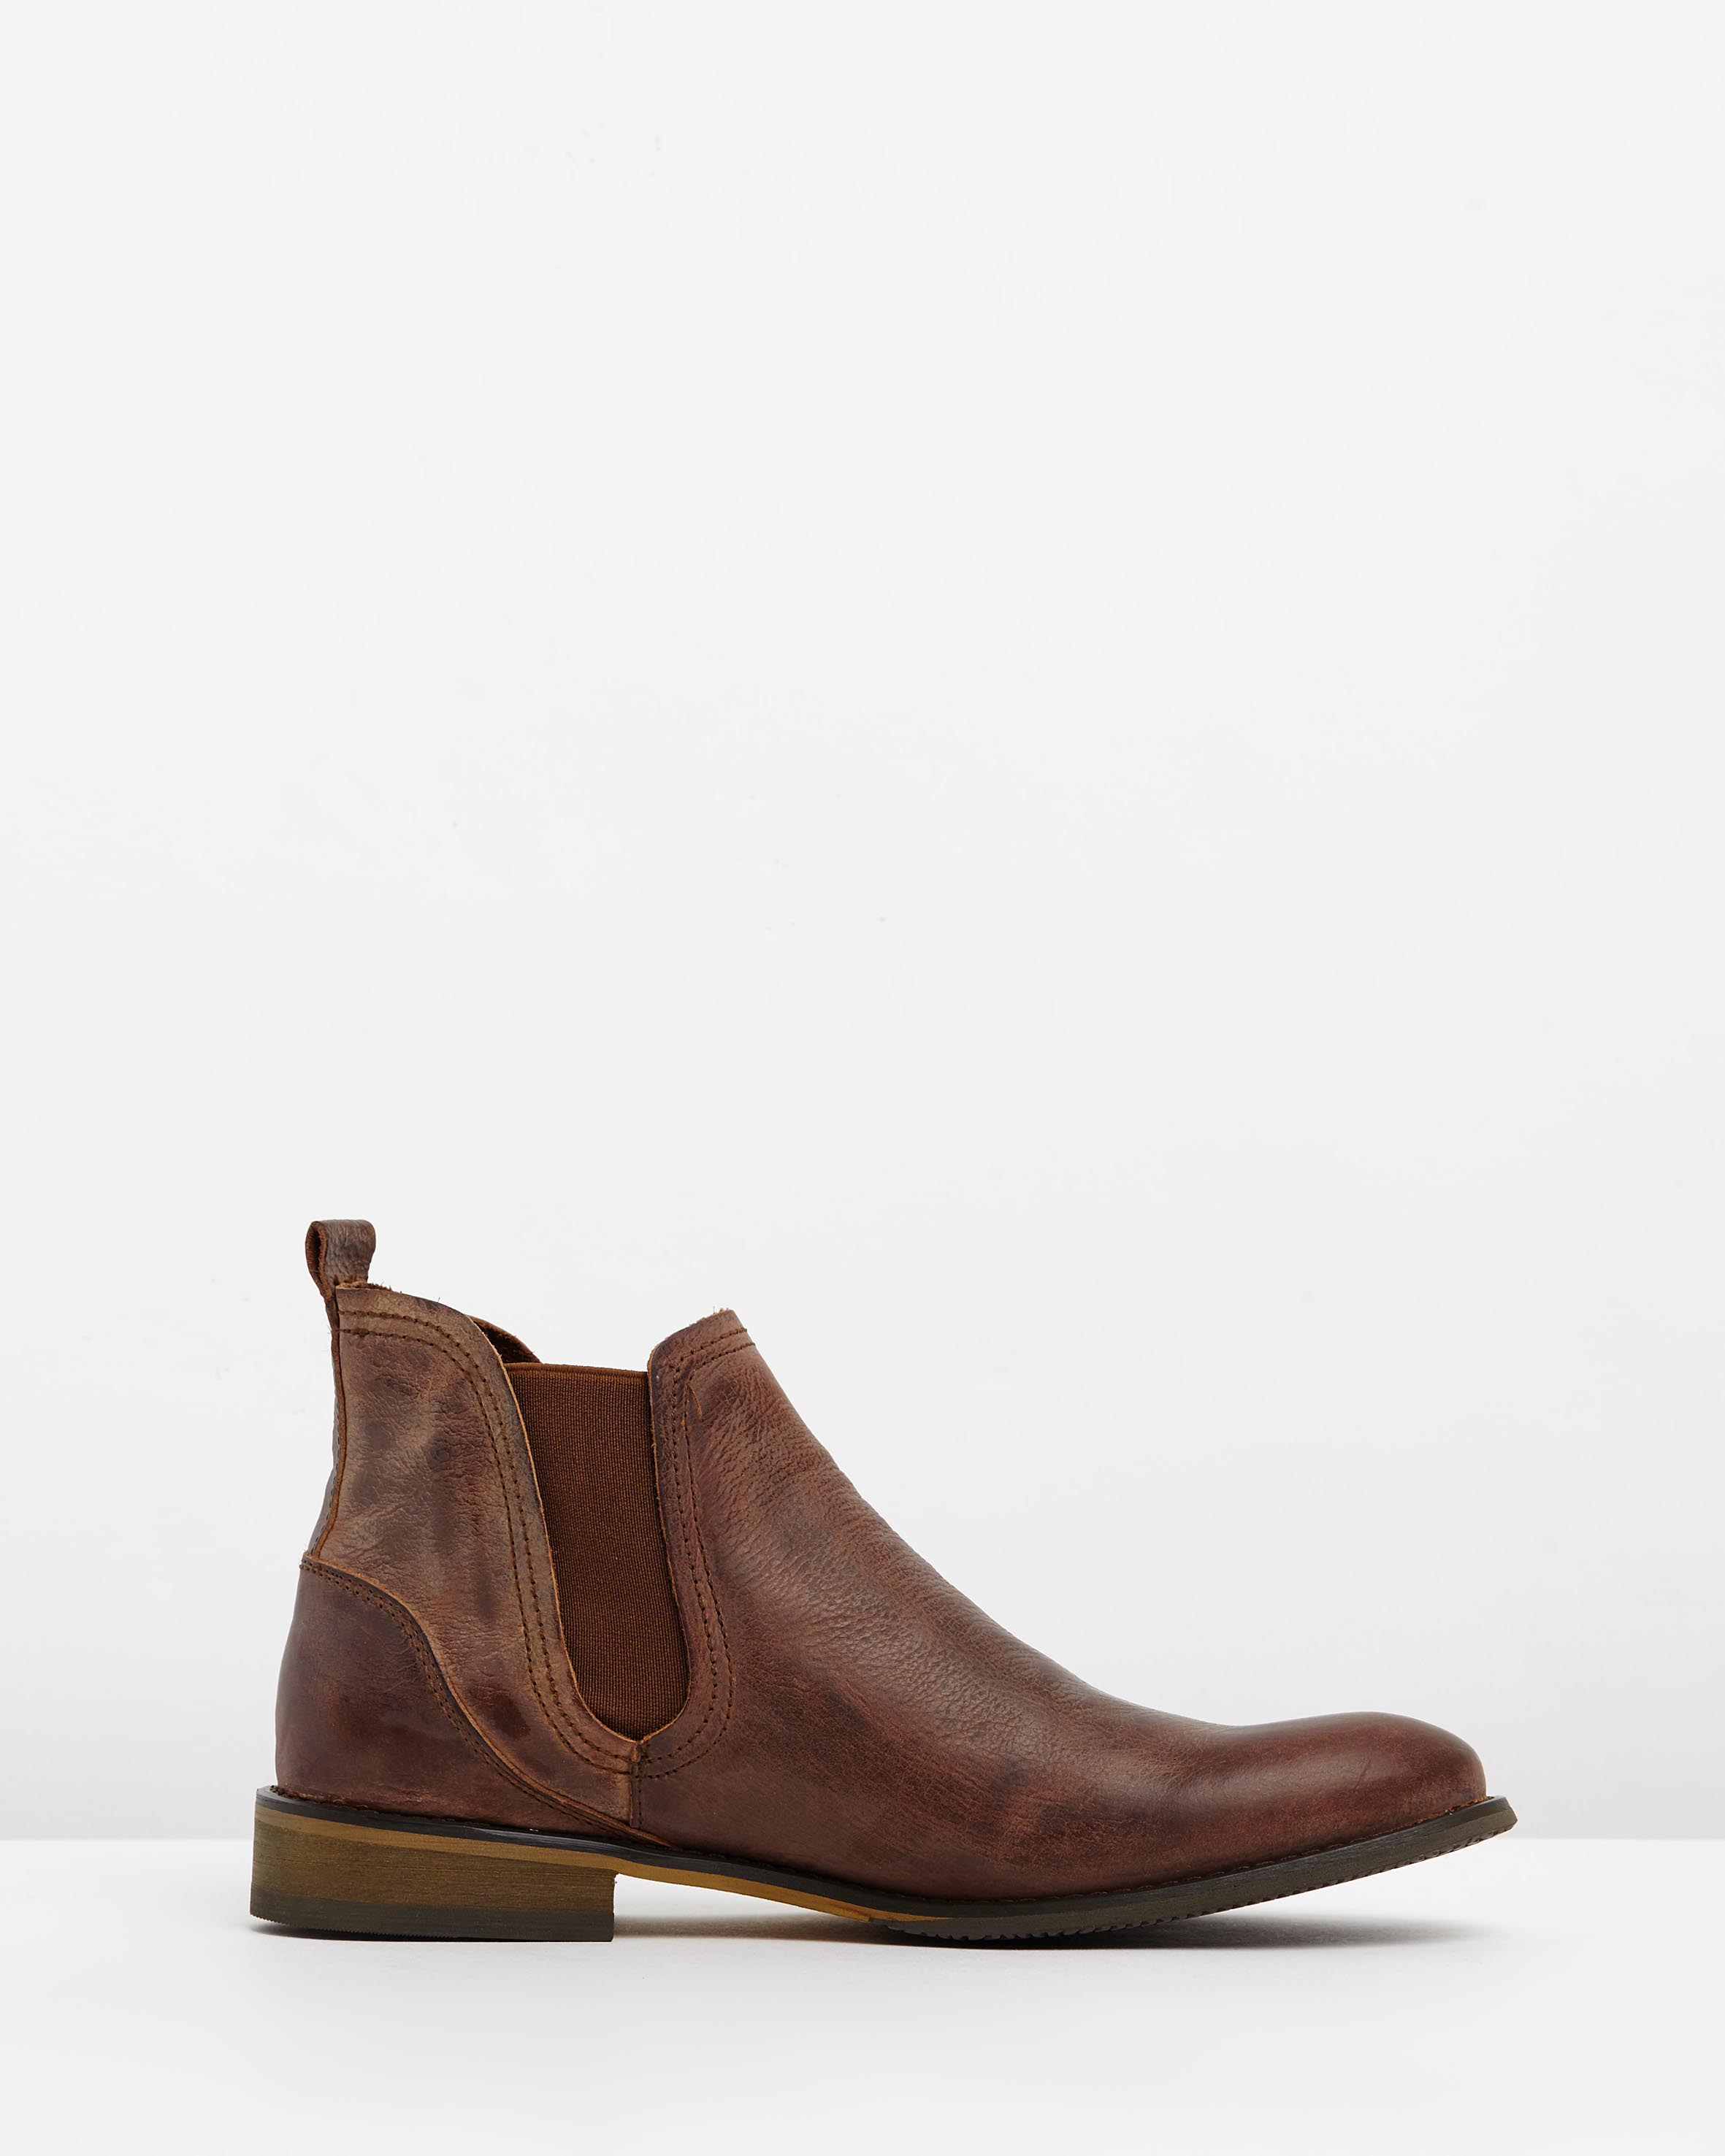 Cheap Mens Boots Online mgwsjYyF